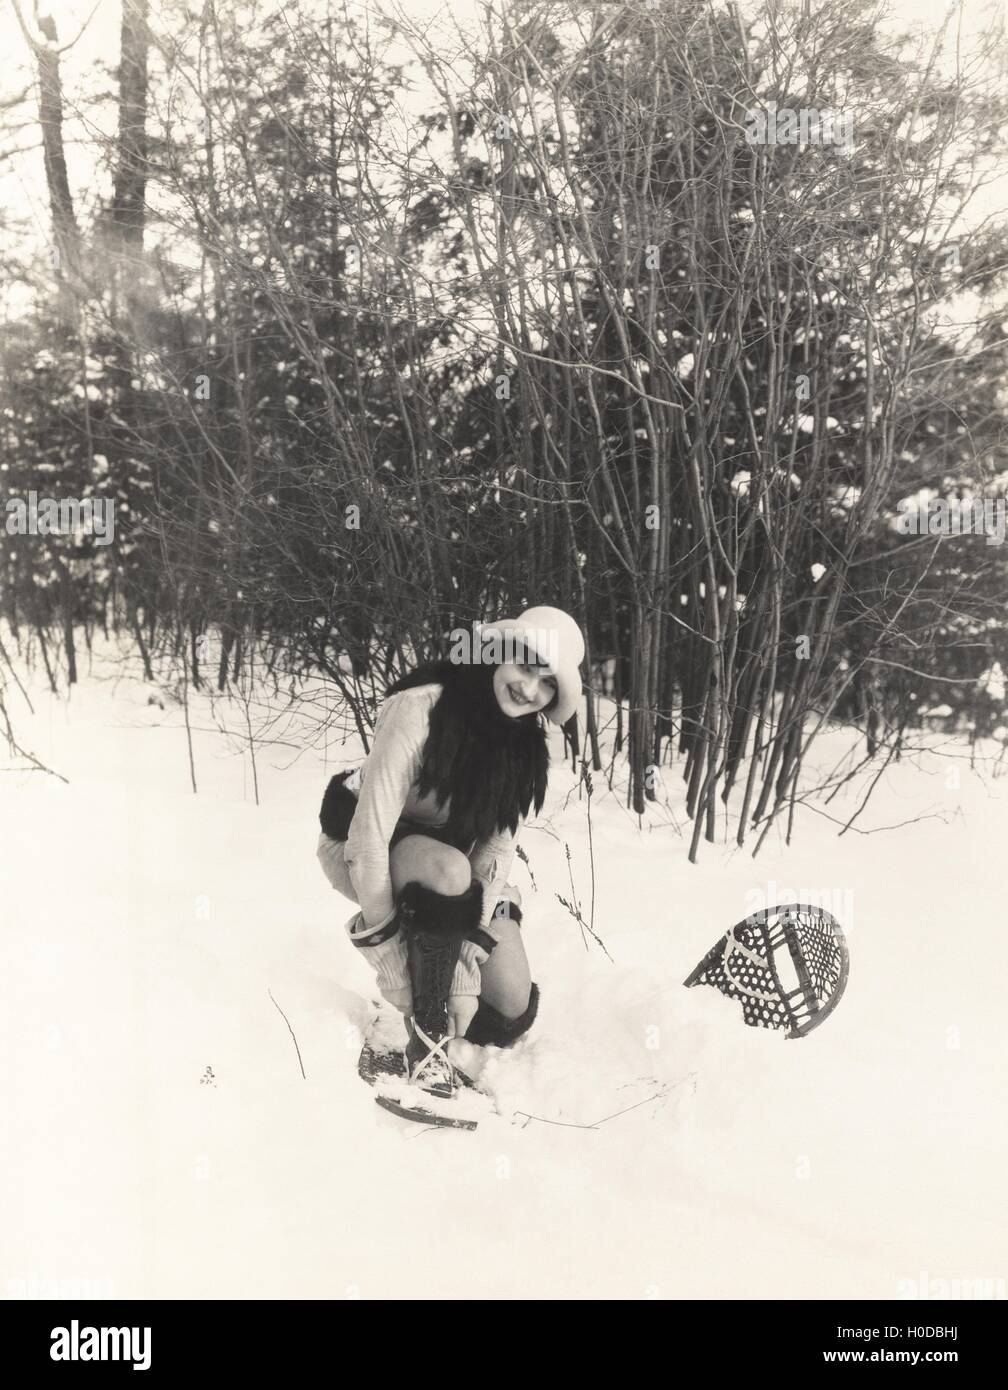 Woman putting on snowshoes - Stock Image